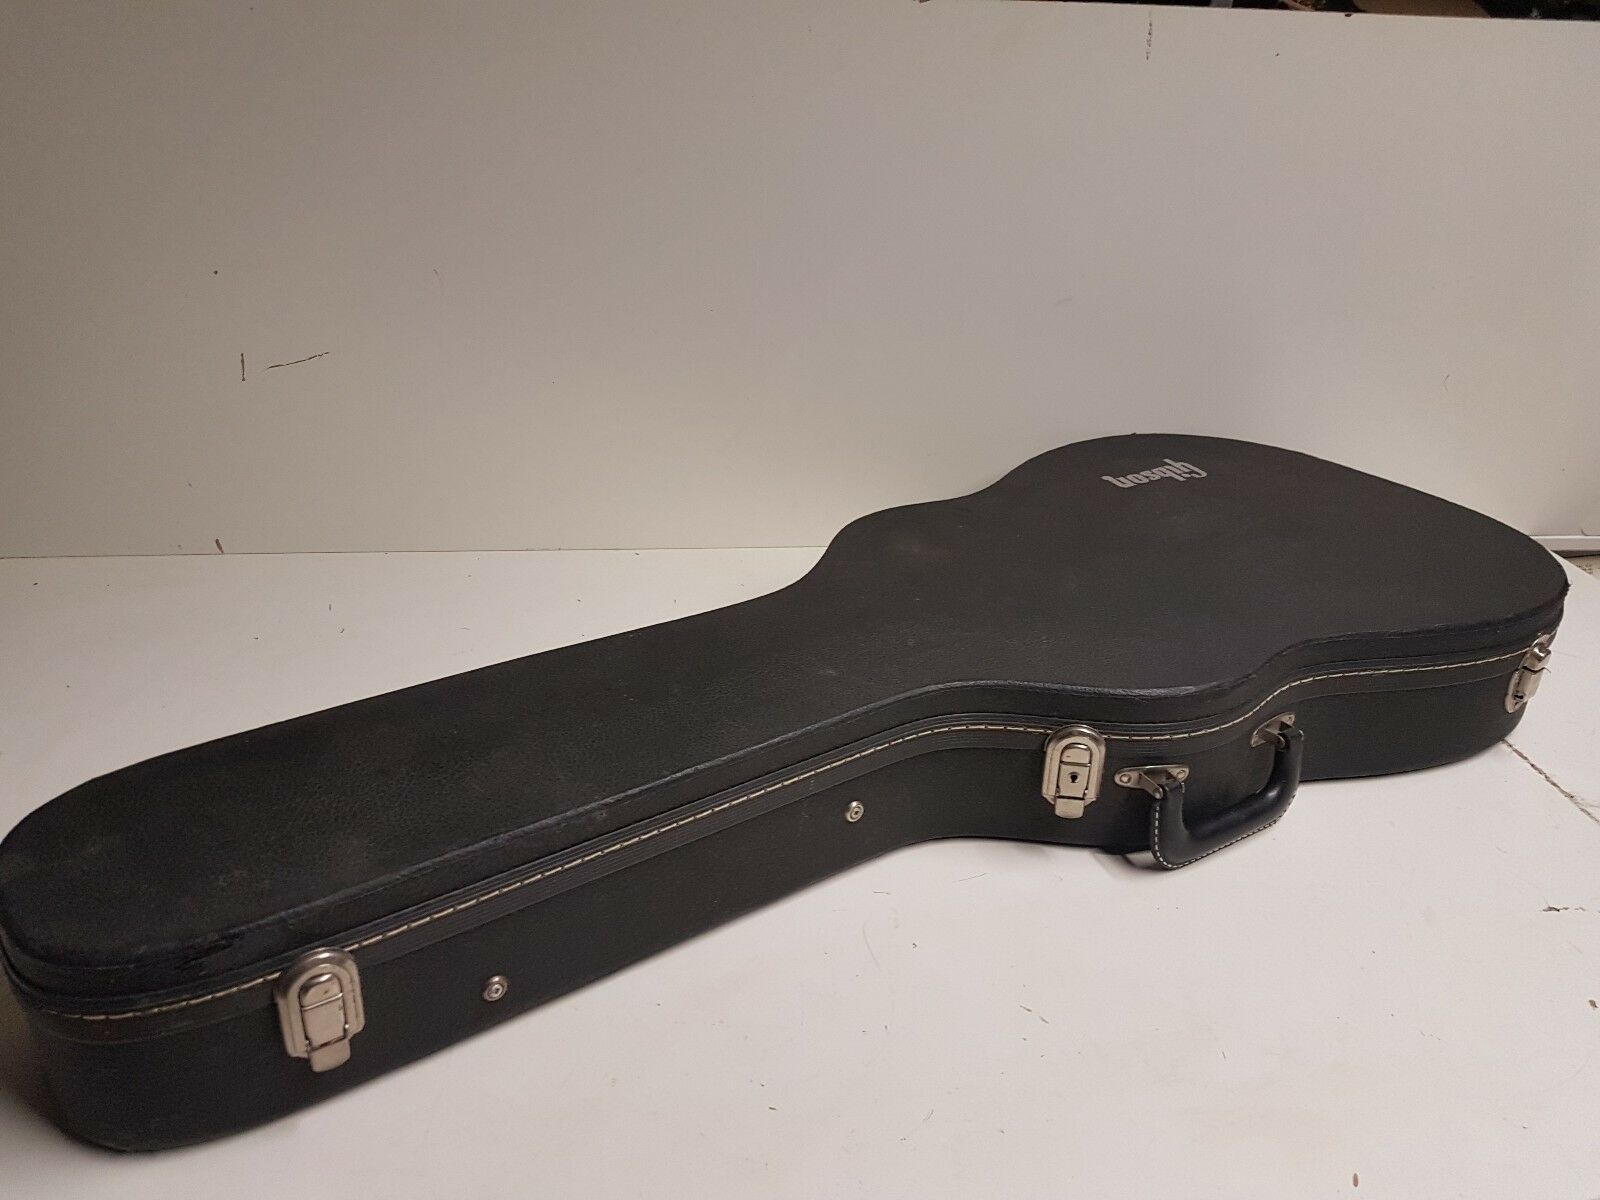 1979 GIBSON ES 335 S SOLID BODY GUITAR CASE - made in USA